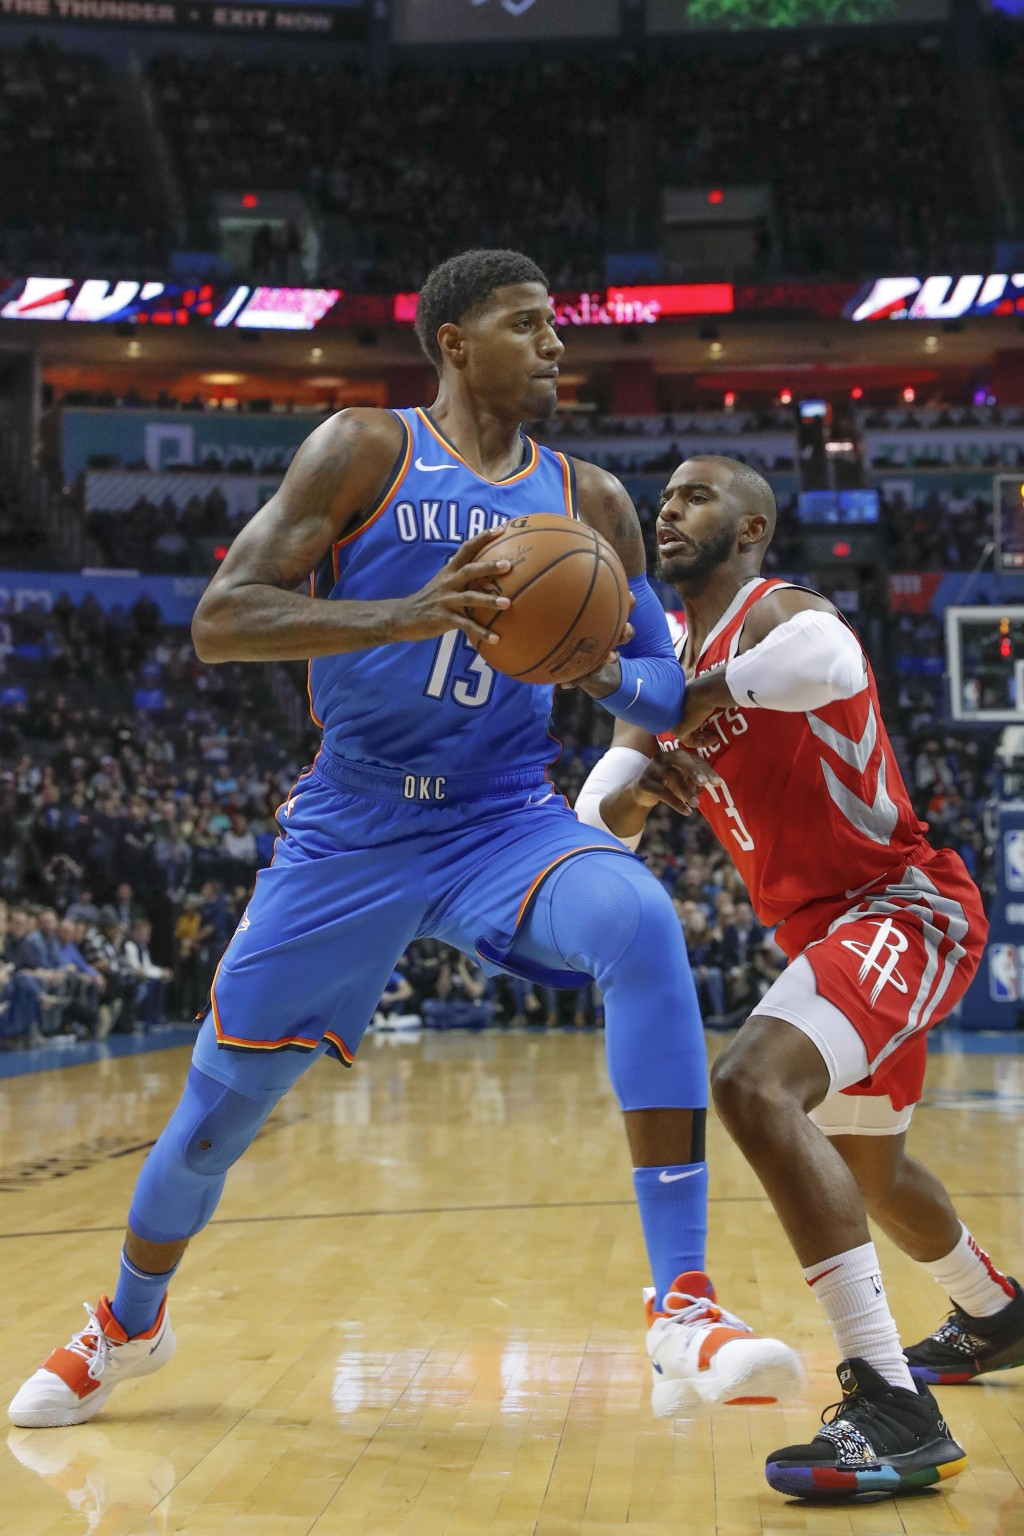 Oklahoma City Thunder forward Paul George (13) drives to the basket against Houston Rockets guard Chris Paul (3) during the first quarter of an NBA ba